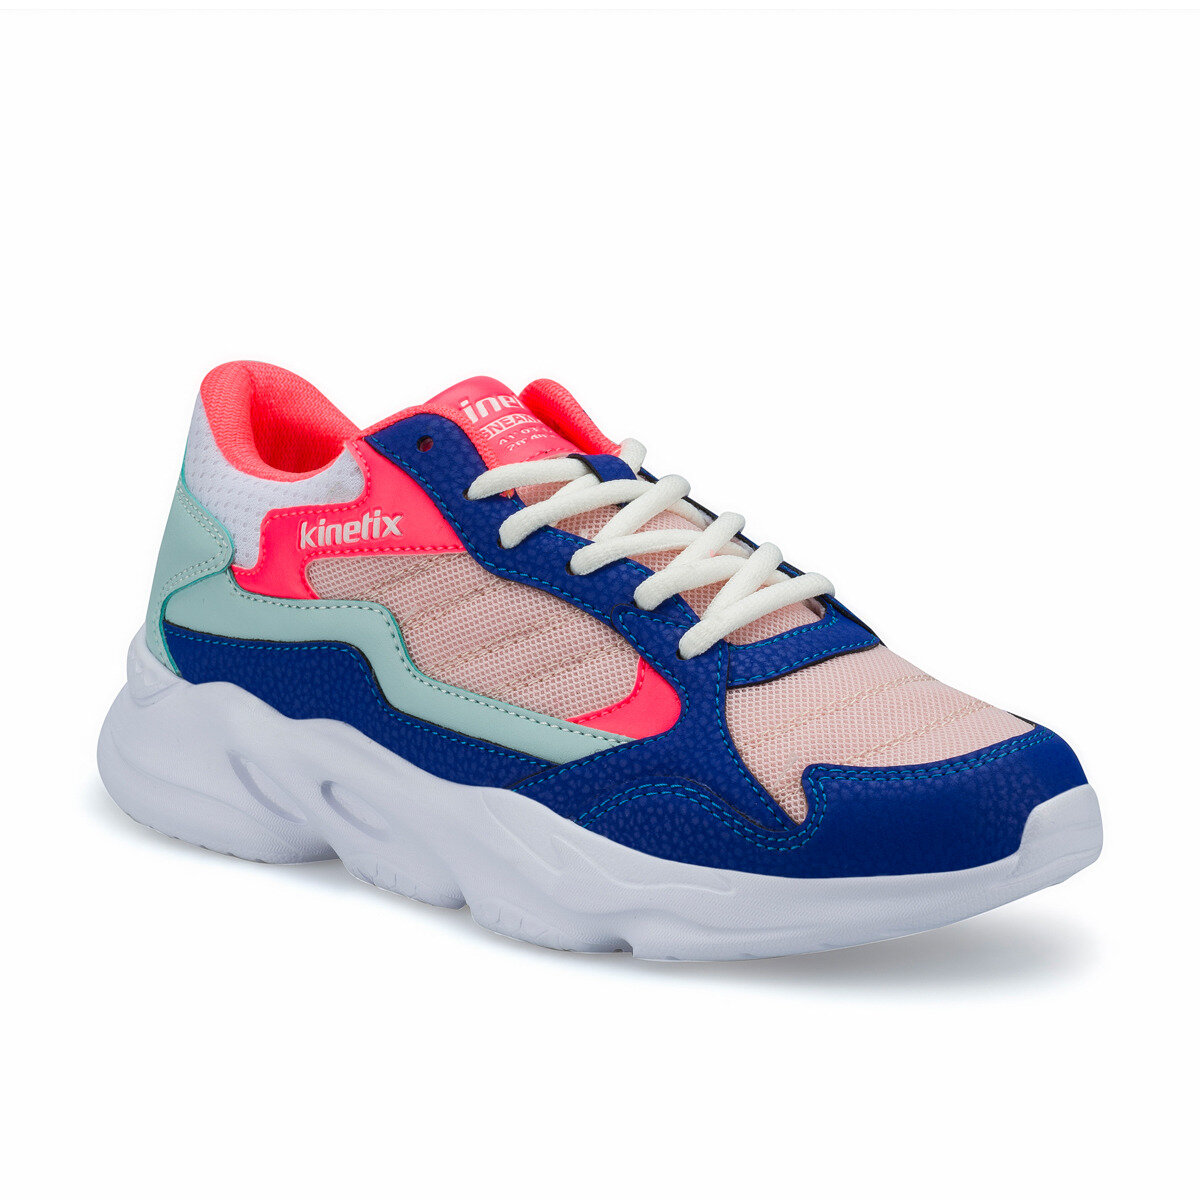 FLO EPIC MESH W Light Navy Blue Women 'S Sneaker Shoes KINETIX